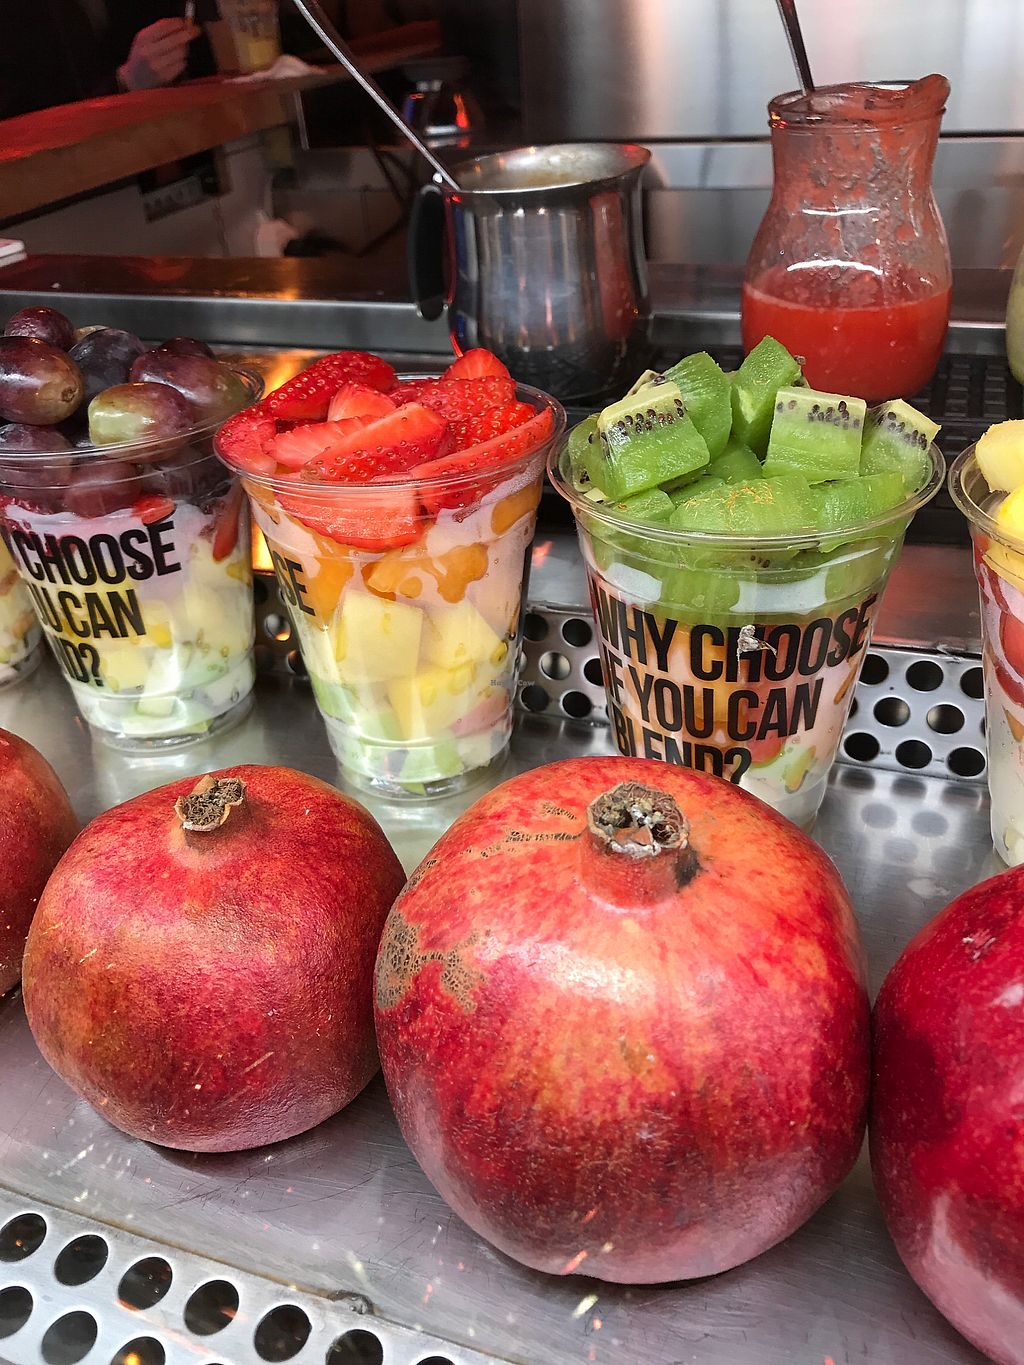 """Photo of Baldrocco Frutta e Verdura  by <a href=""""/members/profile/juliettefrenchvegan"""">juliettefrenchvegan</a> <br/>Juices and hotsmoothies in winter <br/> December 25, 2017  - <a href='/contact/abuse/image/14736/339036'>Report</a>"""